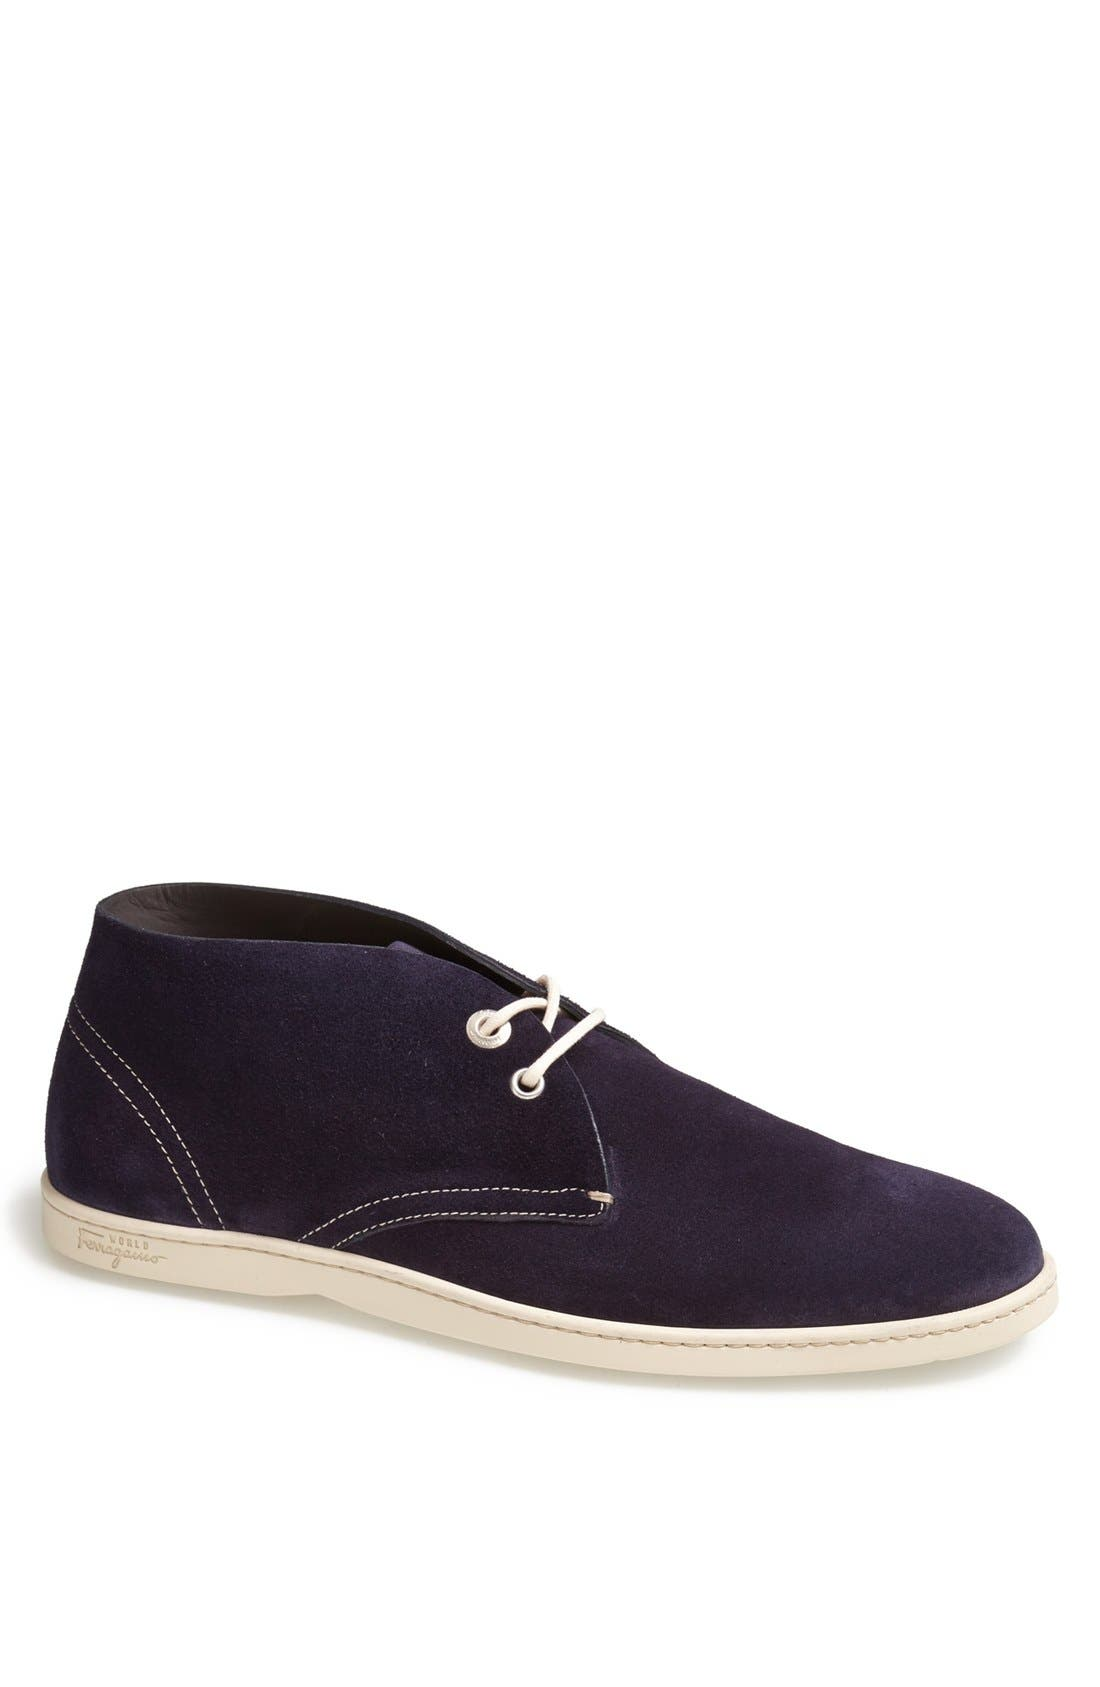 Alternate Image 1 Selected - Salvatore Ferragamo 'Rico' Chukka Sneaker